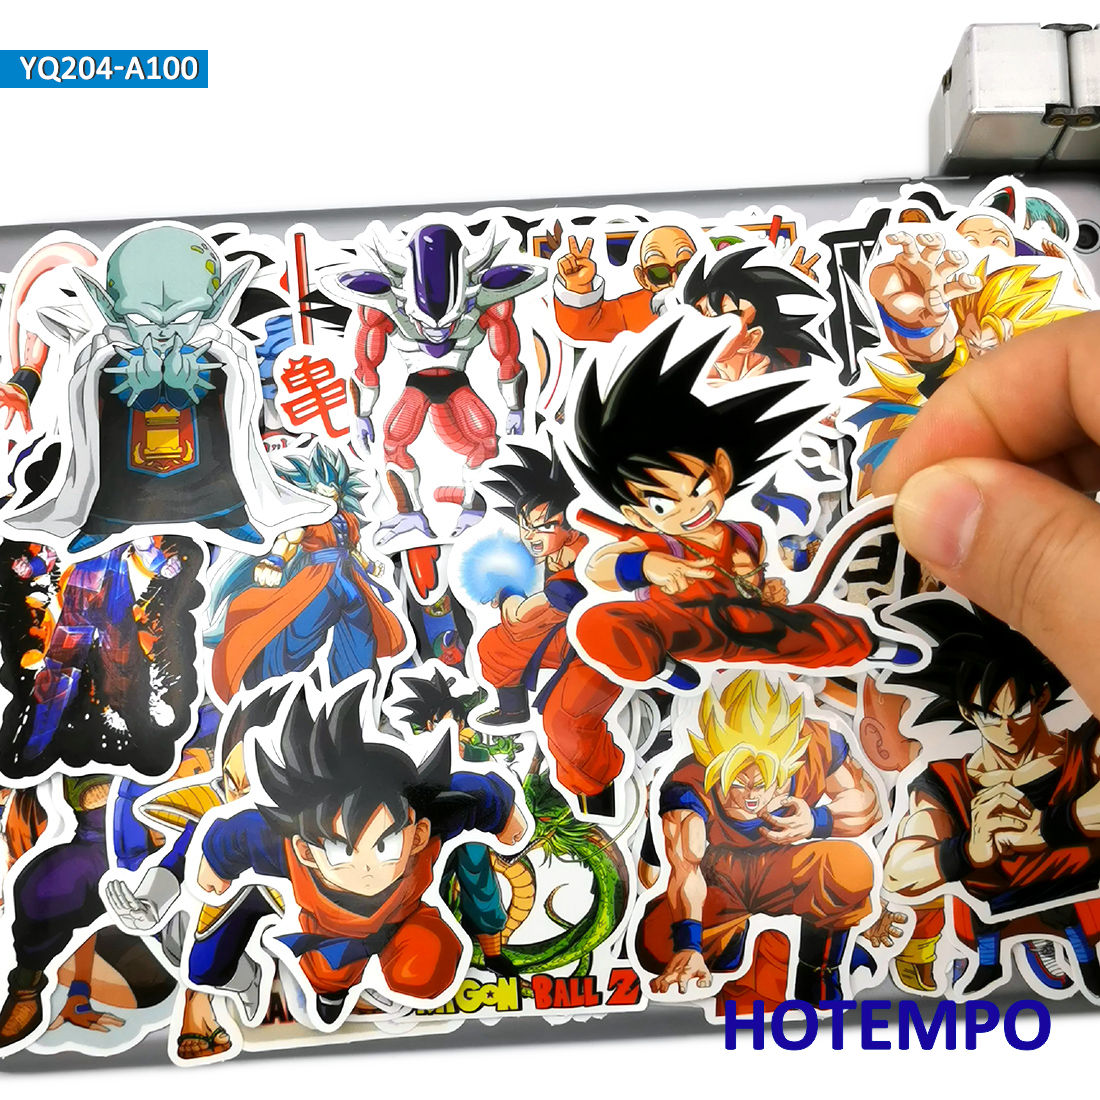 100pcs Mix No Repeat Dragon Ball Goku Anime Stickers For Mobile Phone Laptop Luggage Skateboard Gear Bike Guitar Case Stickers